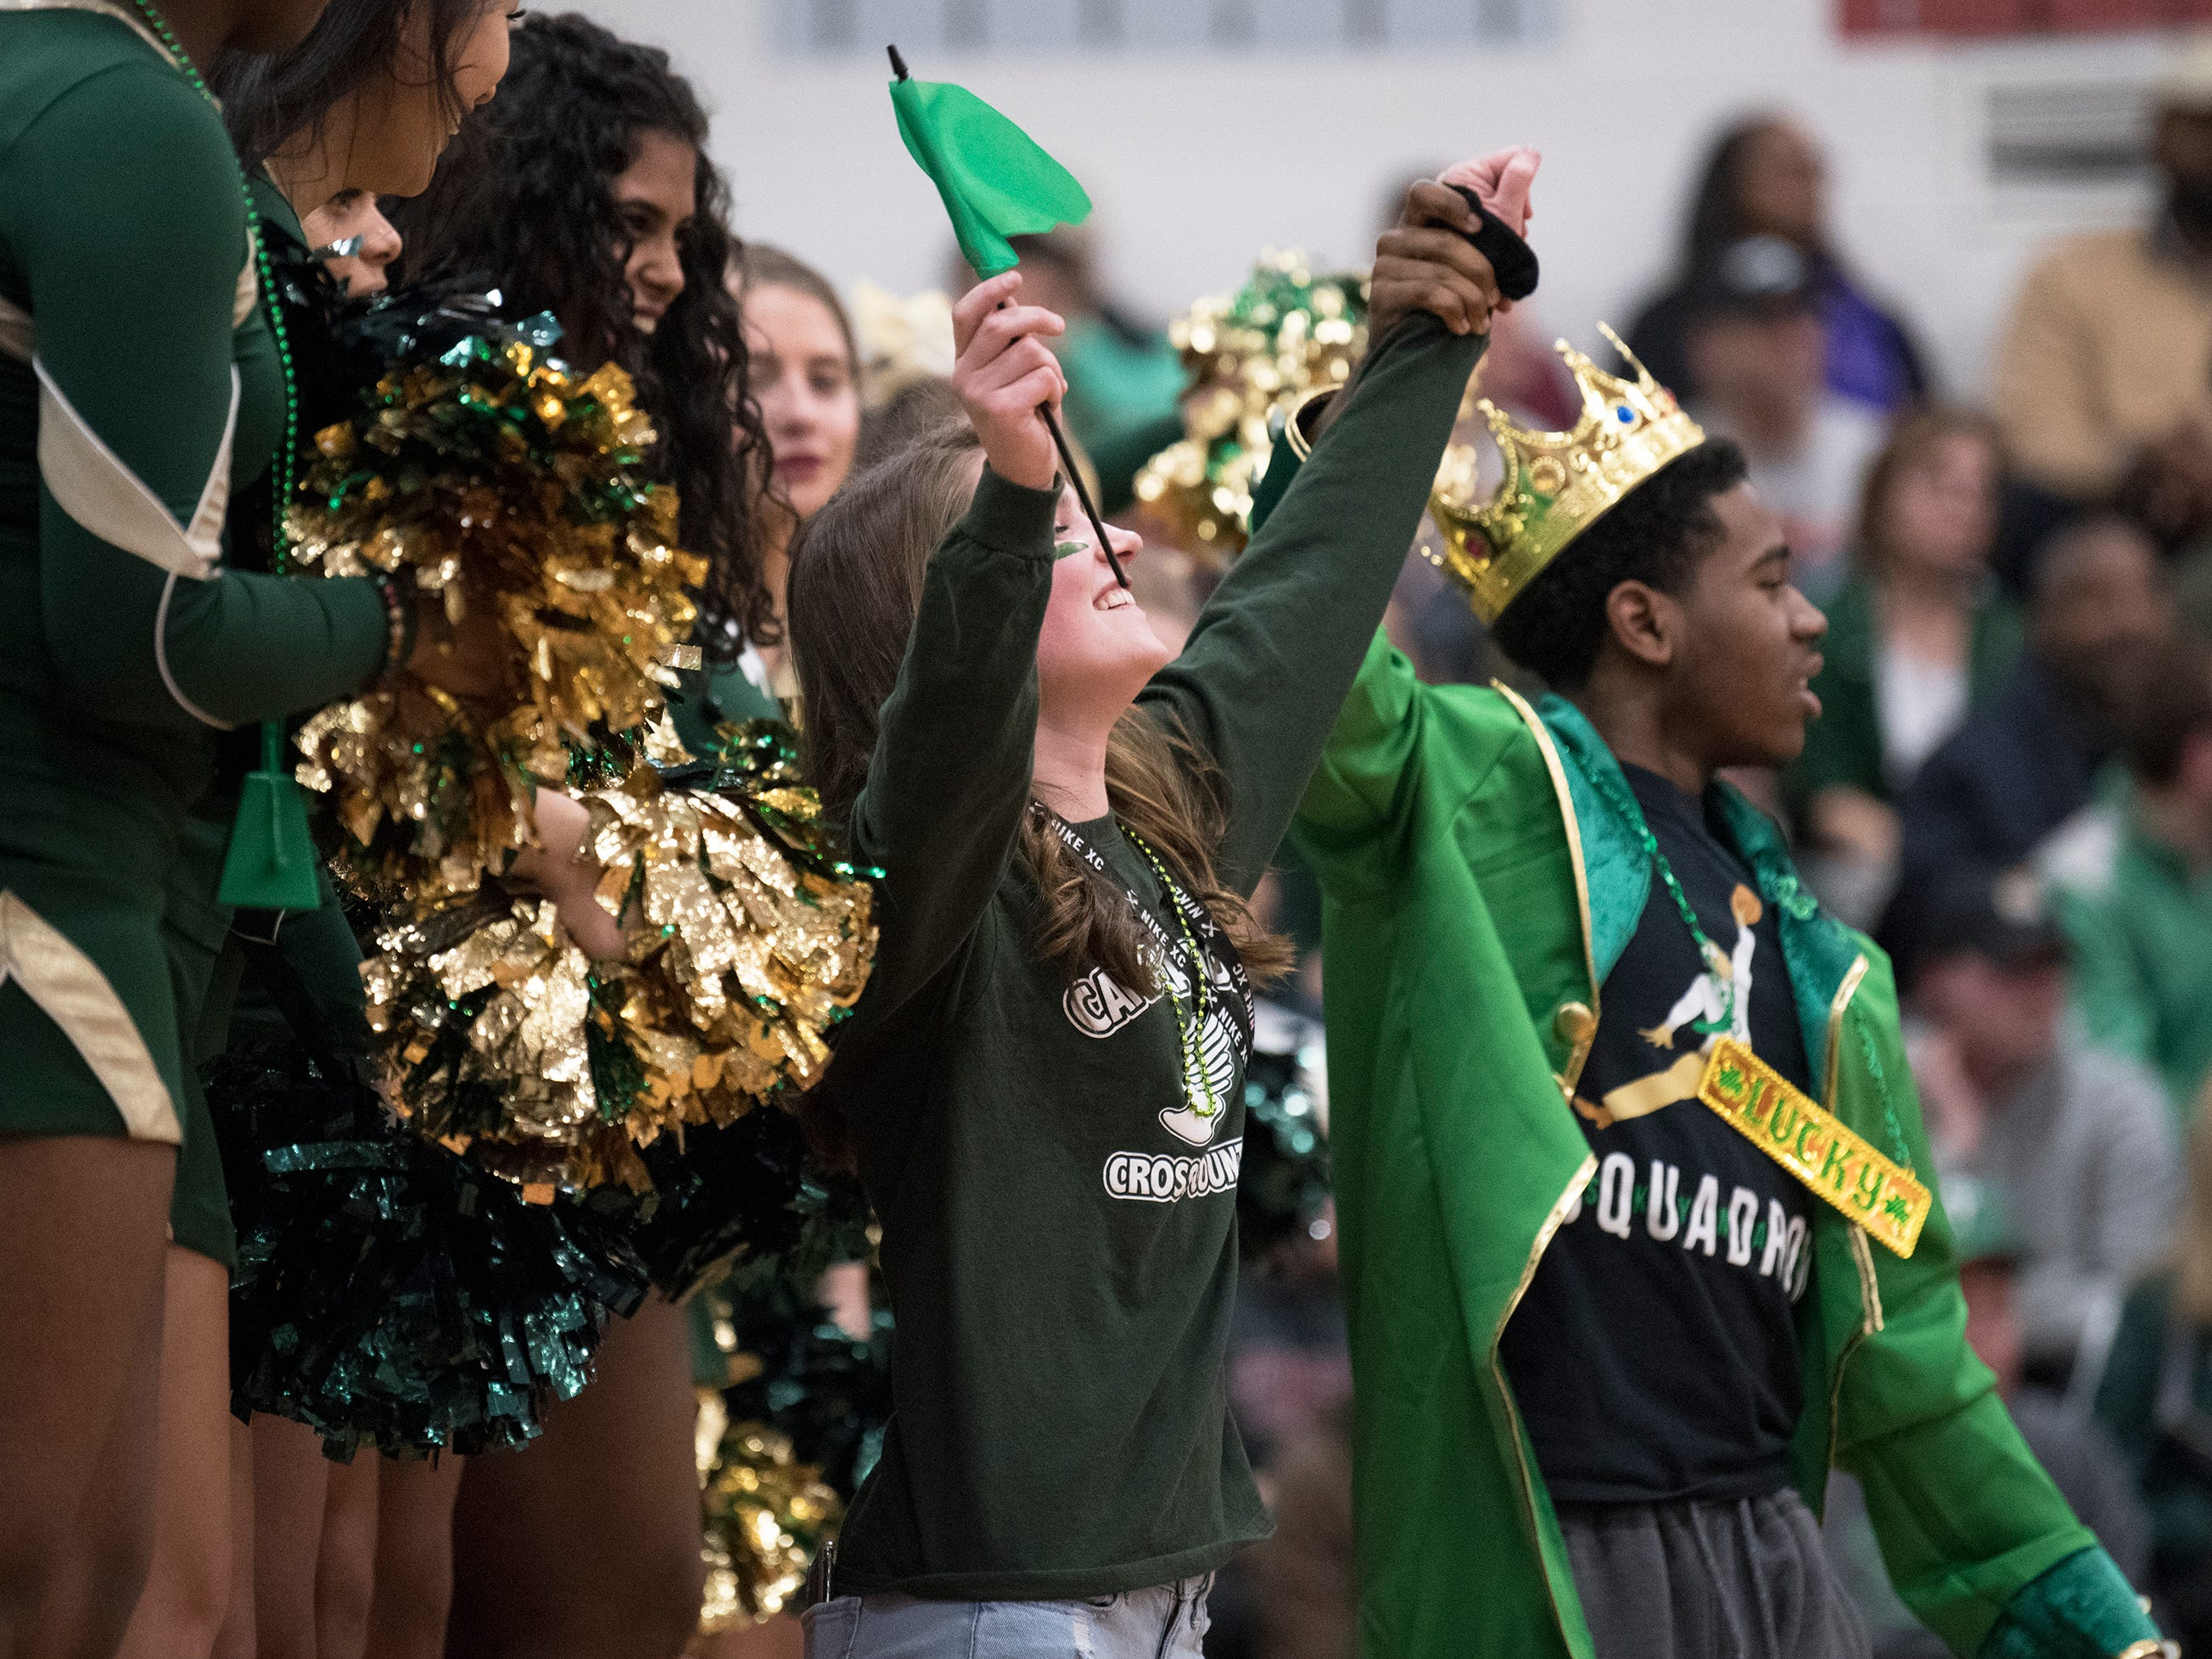 Camden Catholic fan celebrate during the 4th quarter as Camden Catholic defeated Paul VI, 40-34, in the Non-Public A South boys basketball final played at Jackson Liberty High School on Tuesday, March 5, 2019.